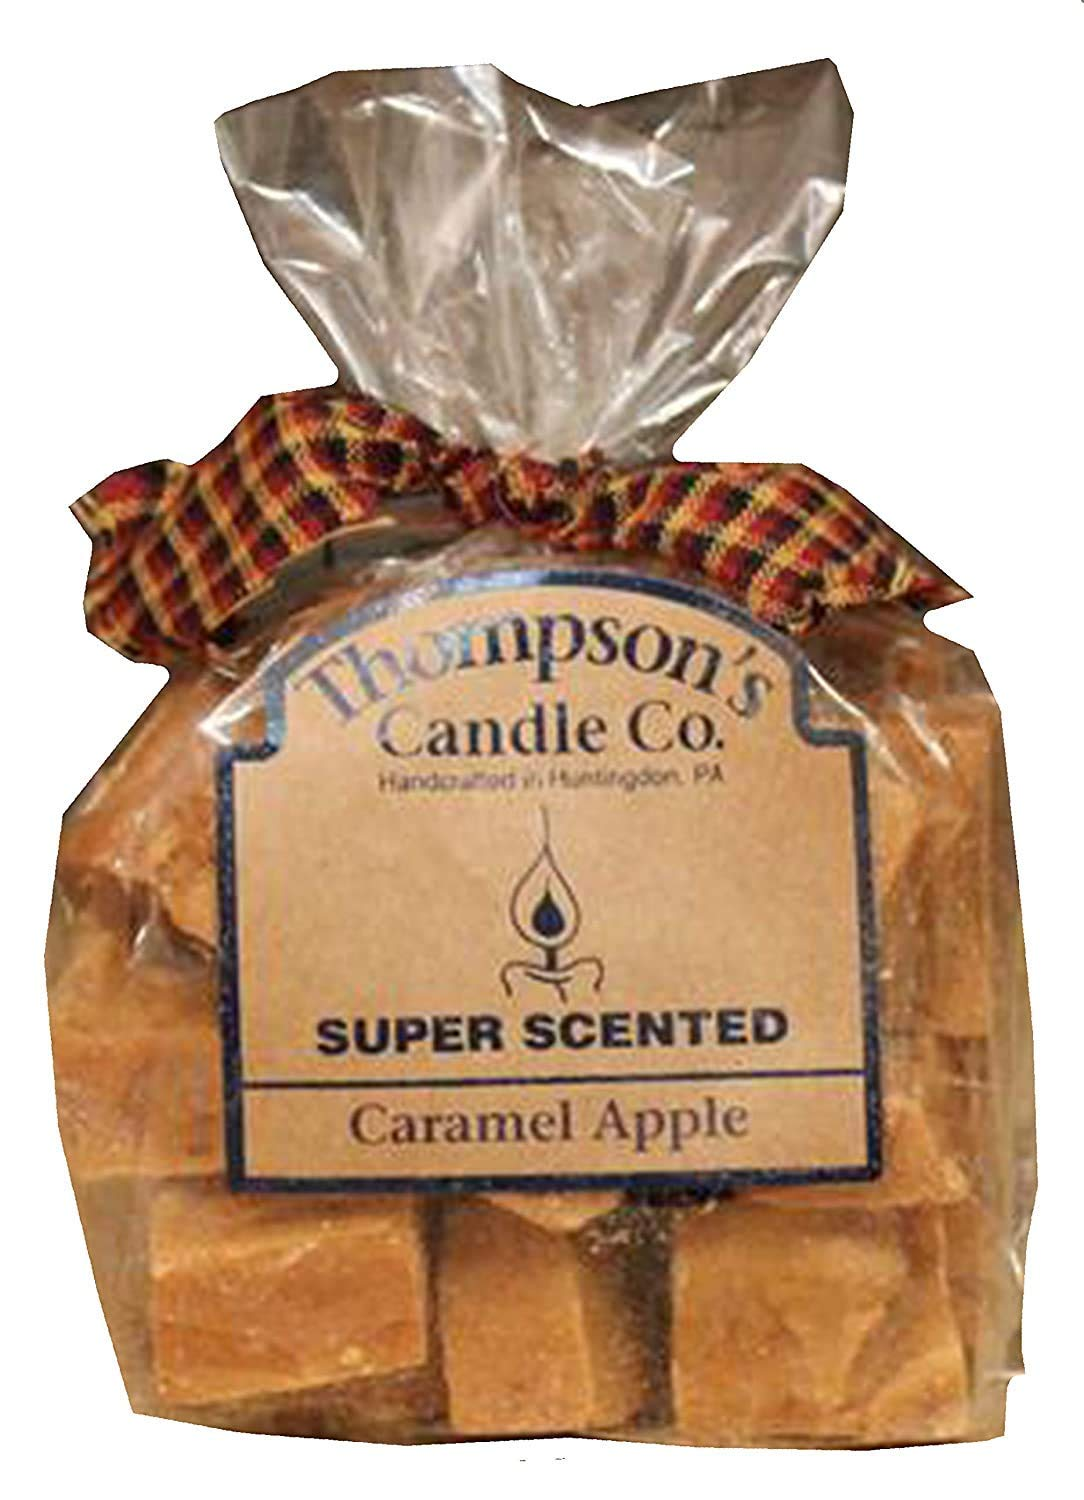 Thompson's Candle cacr Super Scented Caramel Apple Crumbles, 6 Ounce